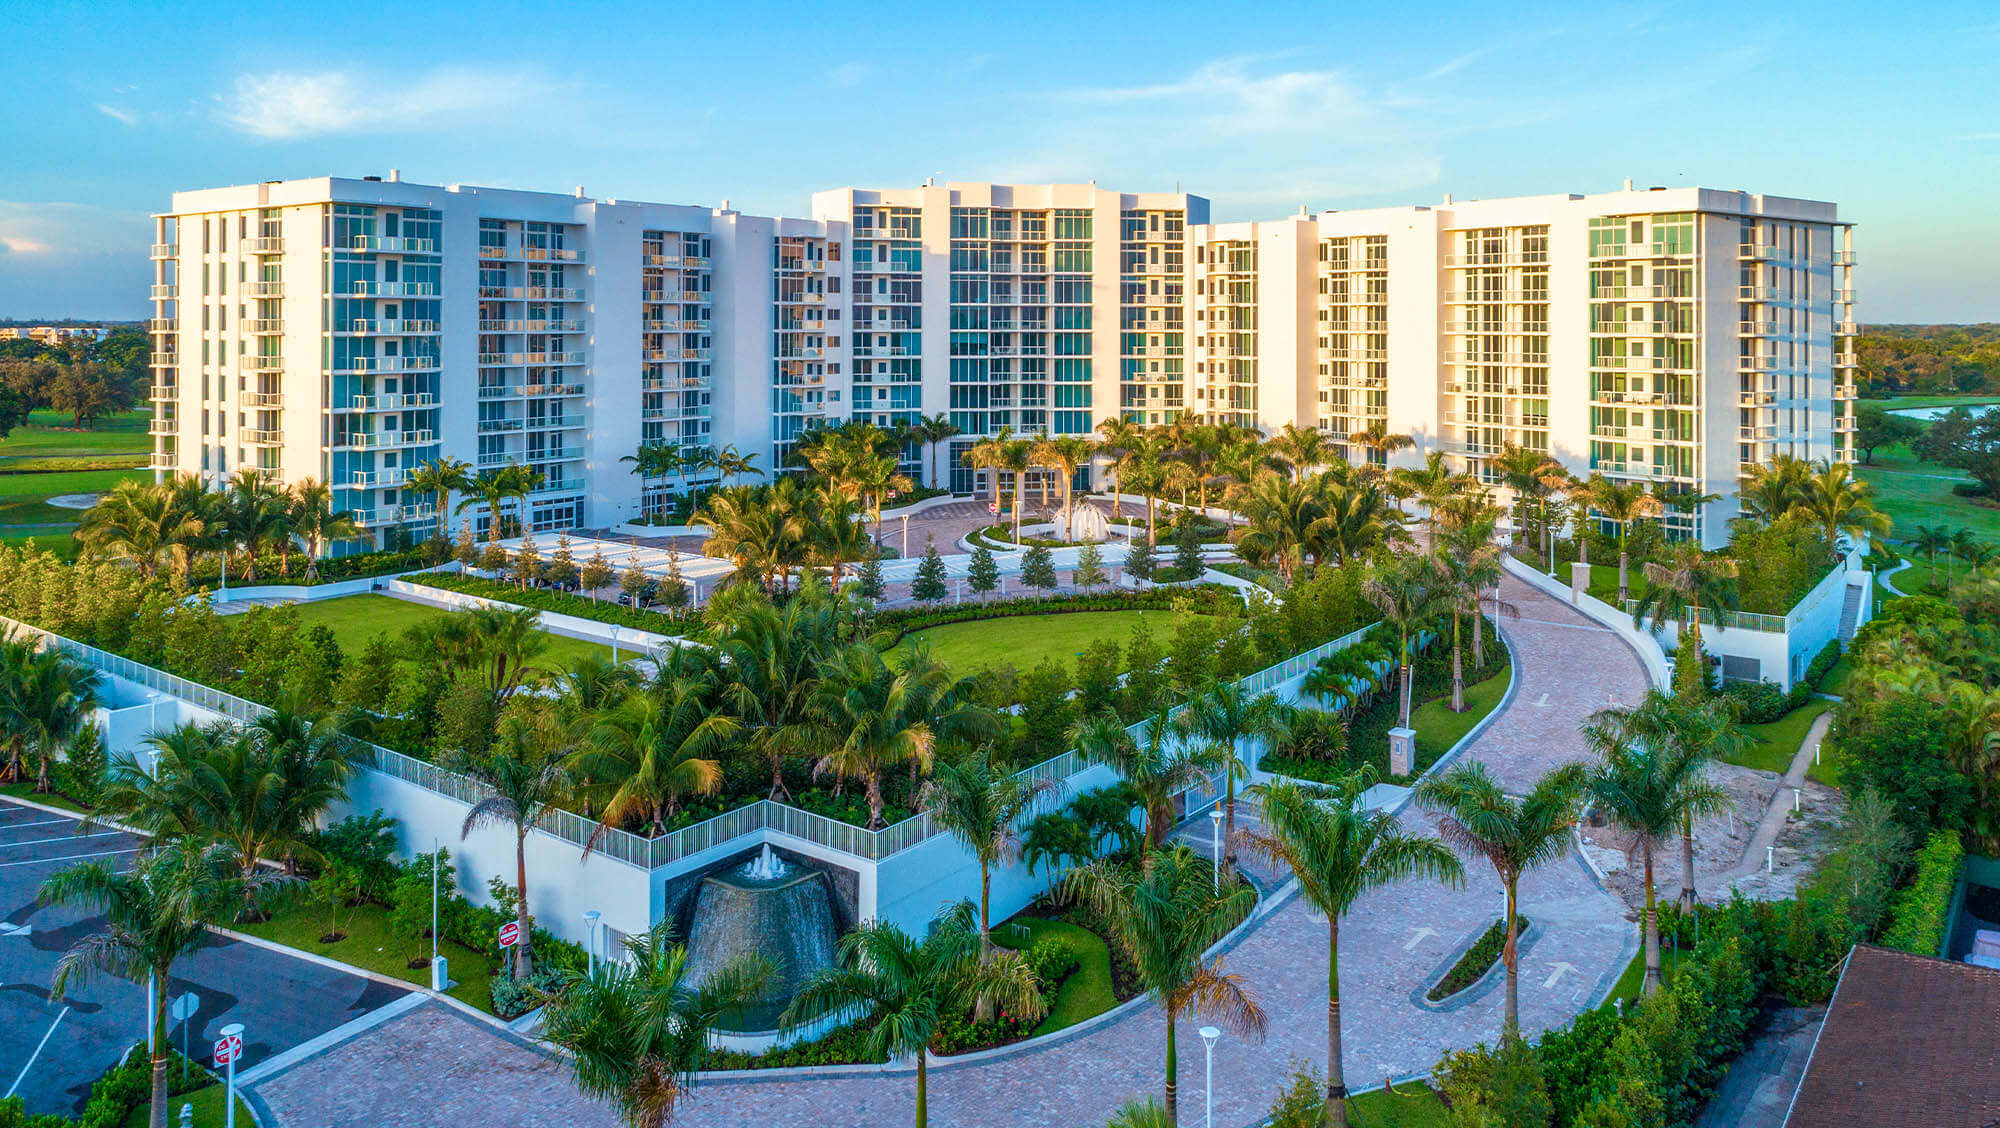 Akoya Boca West Boca Raton Condos for Sale